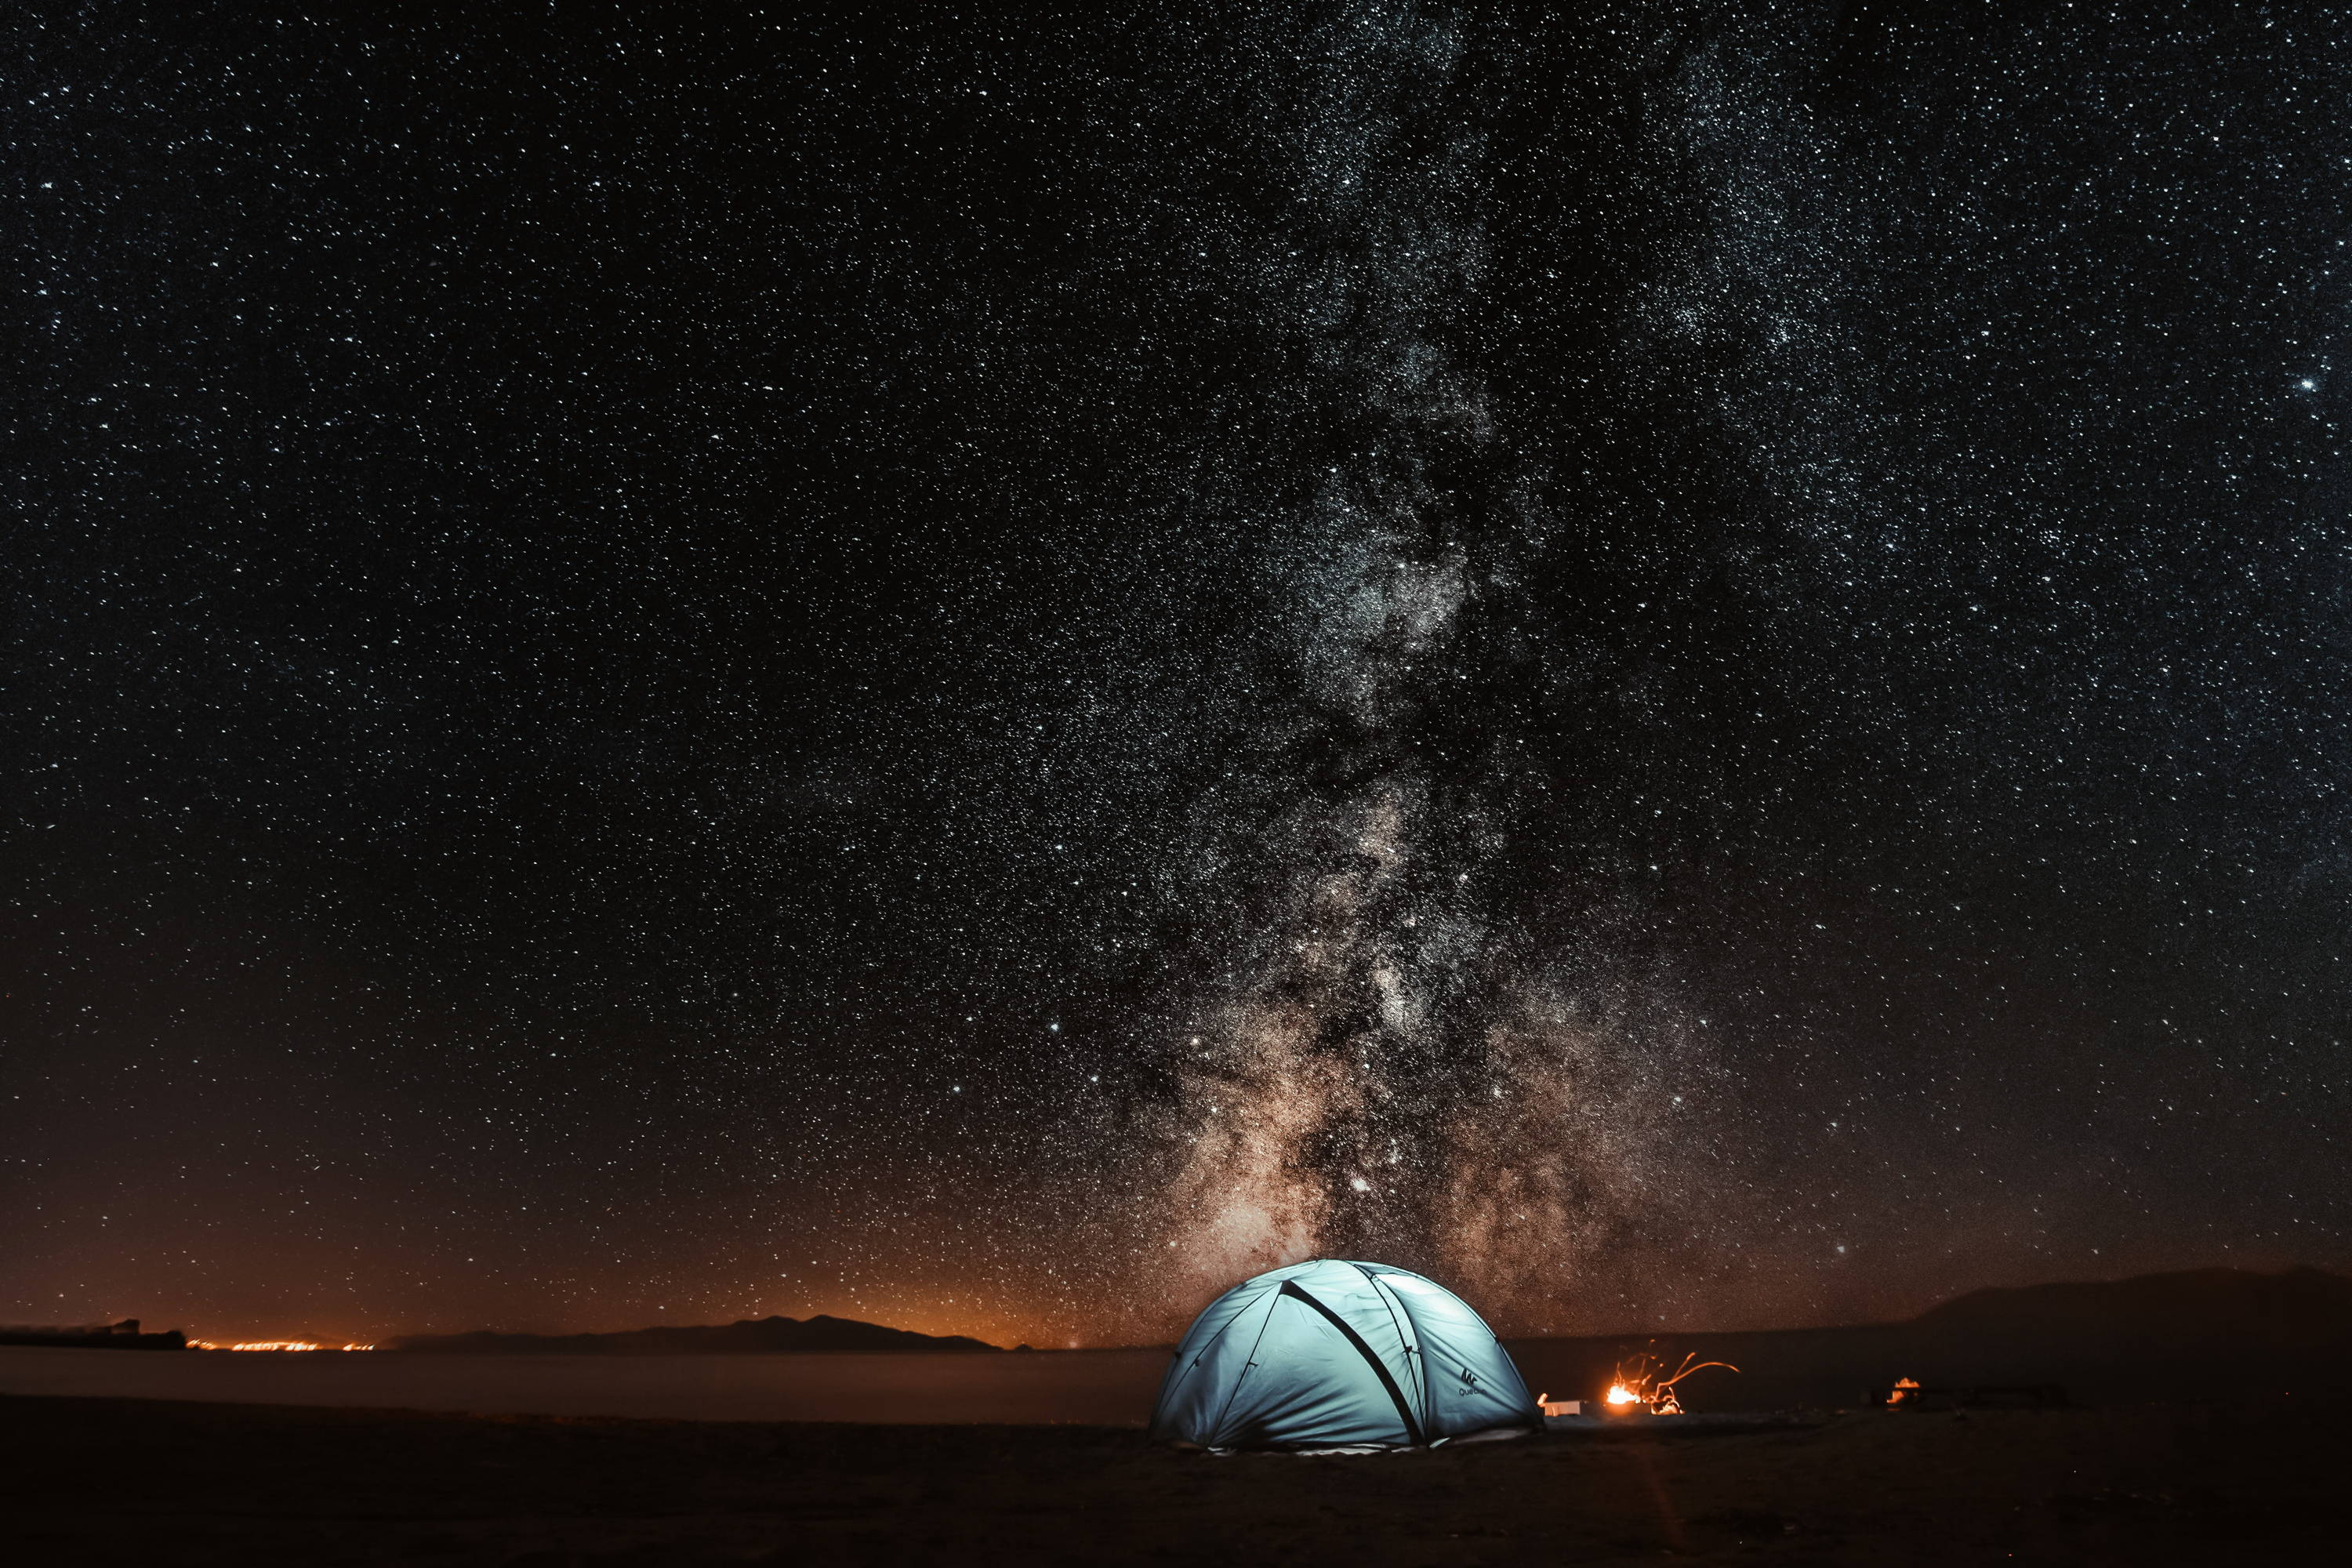 Backpacking Checklist: Essential Items for Adventure. Blue tent with light shining inside and campfire next to it sits under the brilliant night sky.